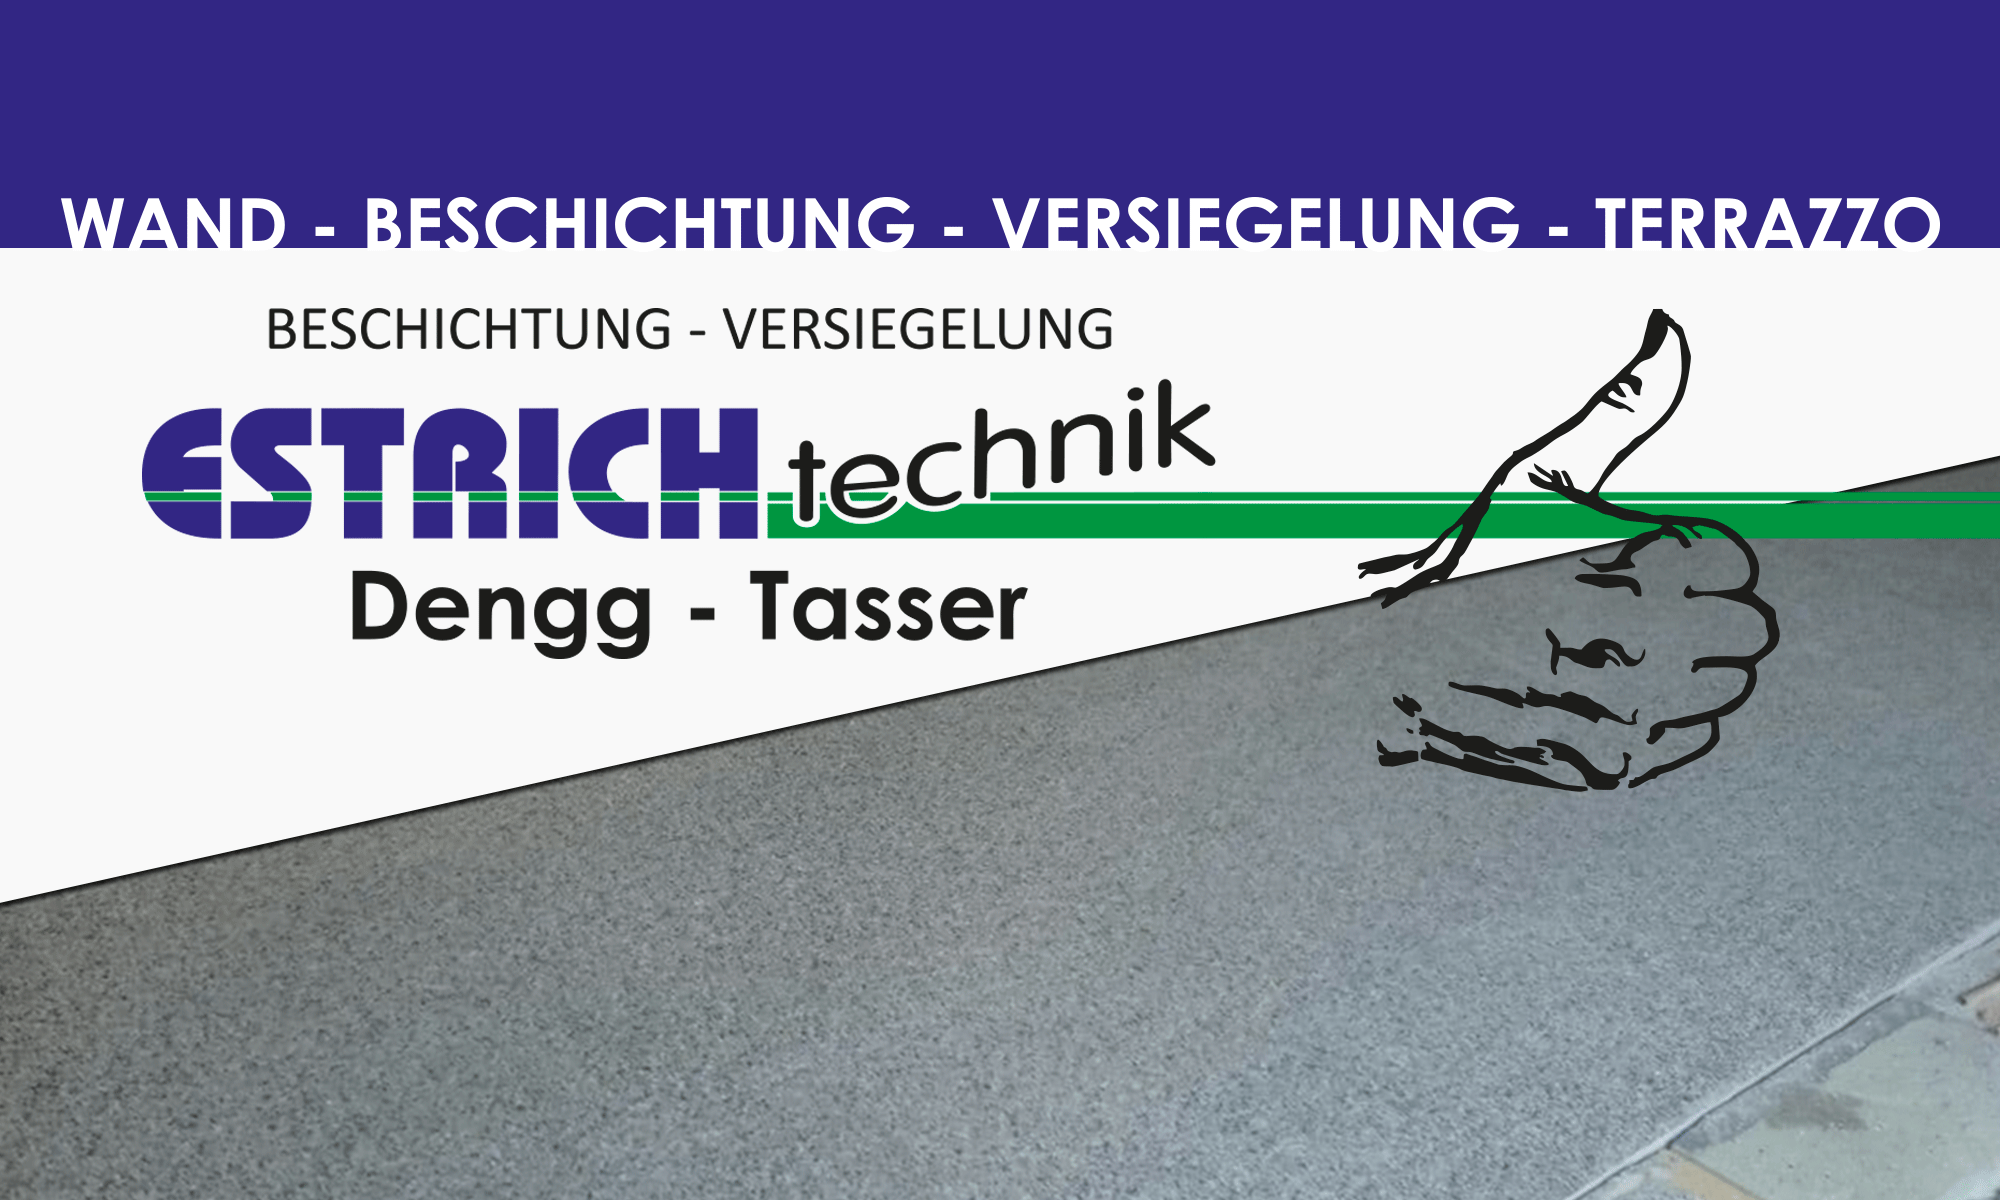 www.estrich-technik.at